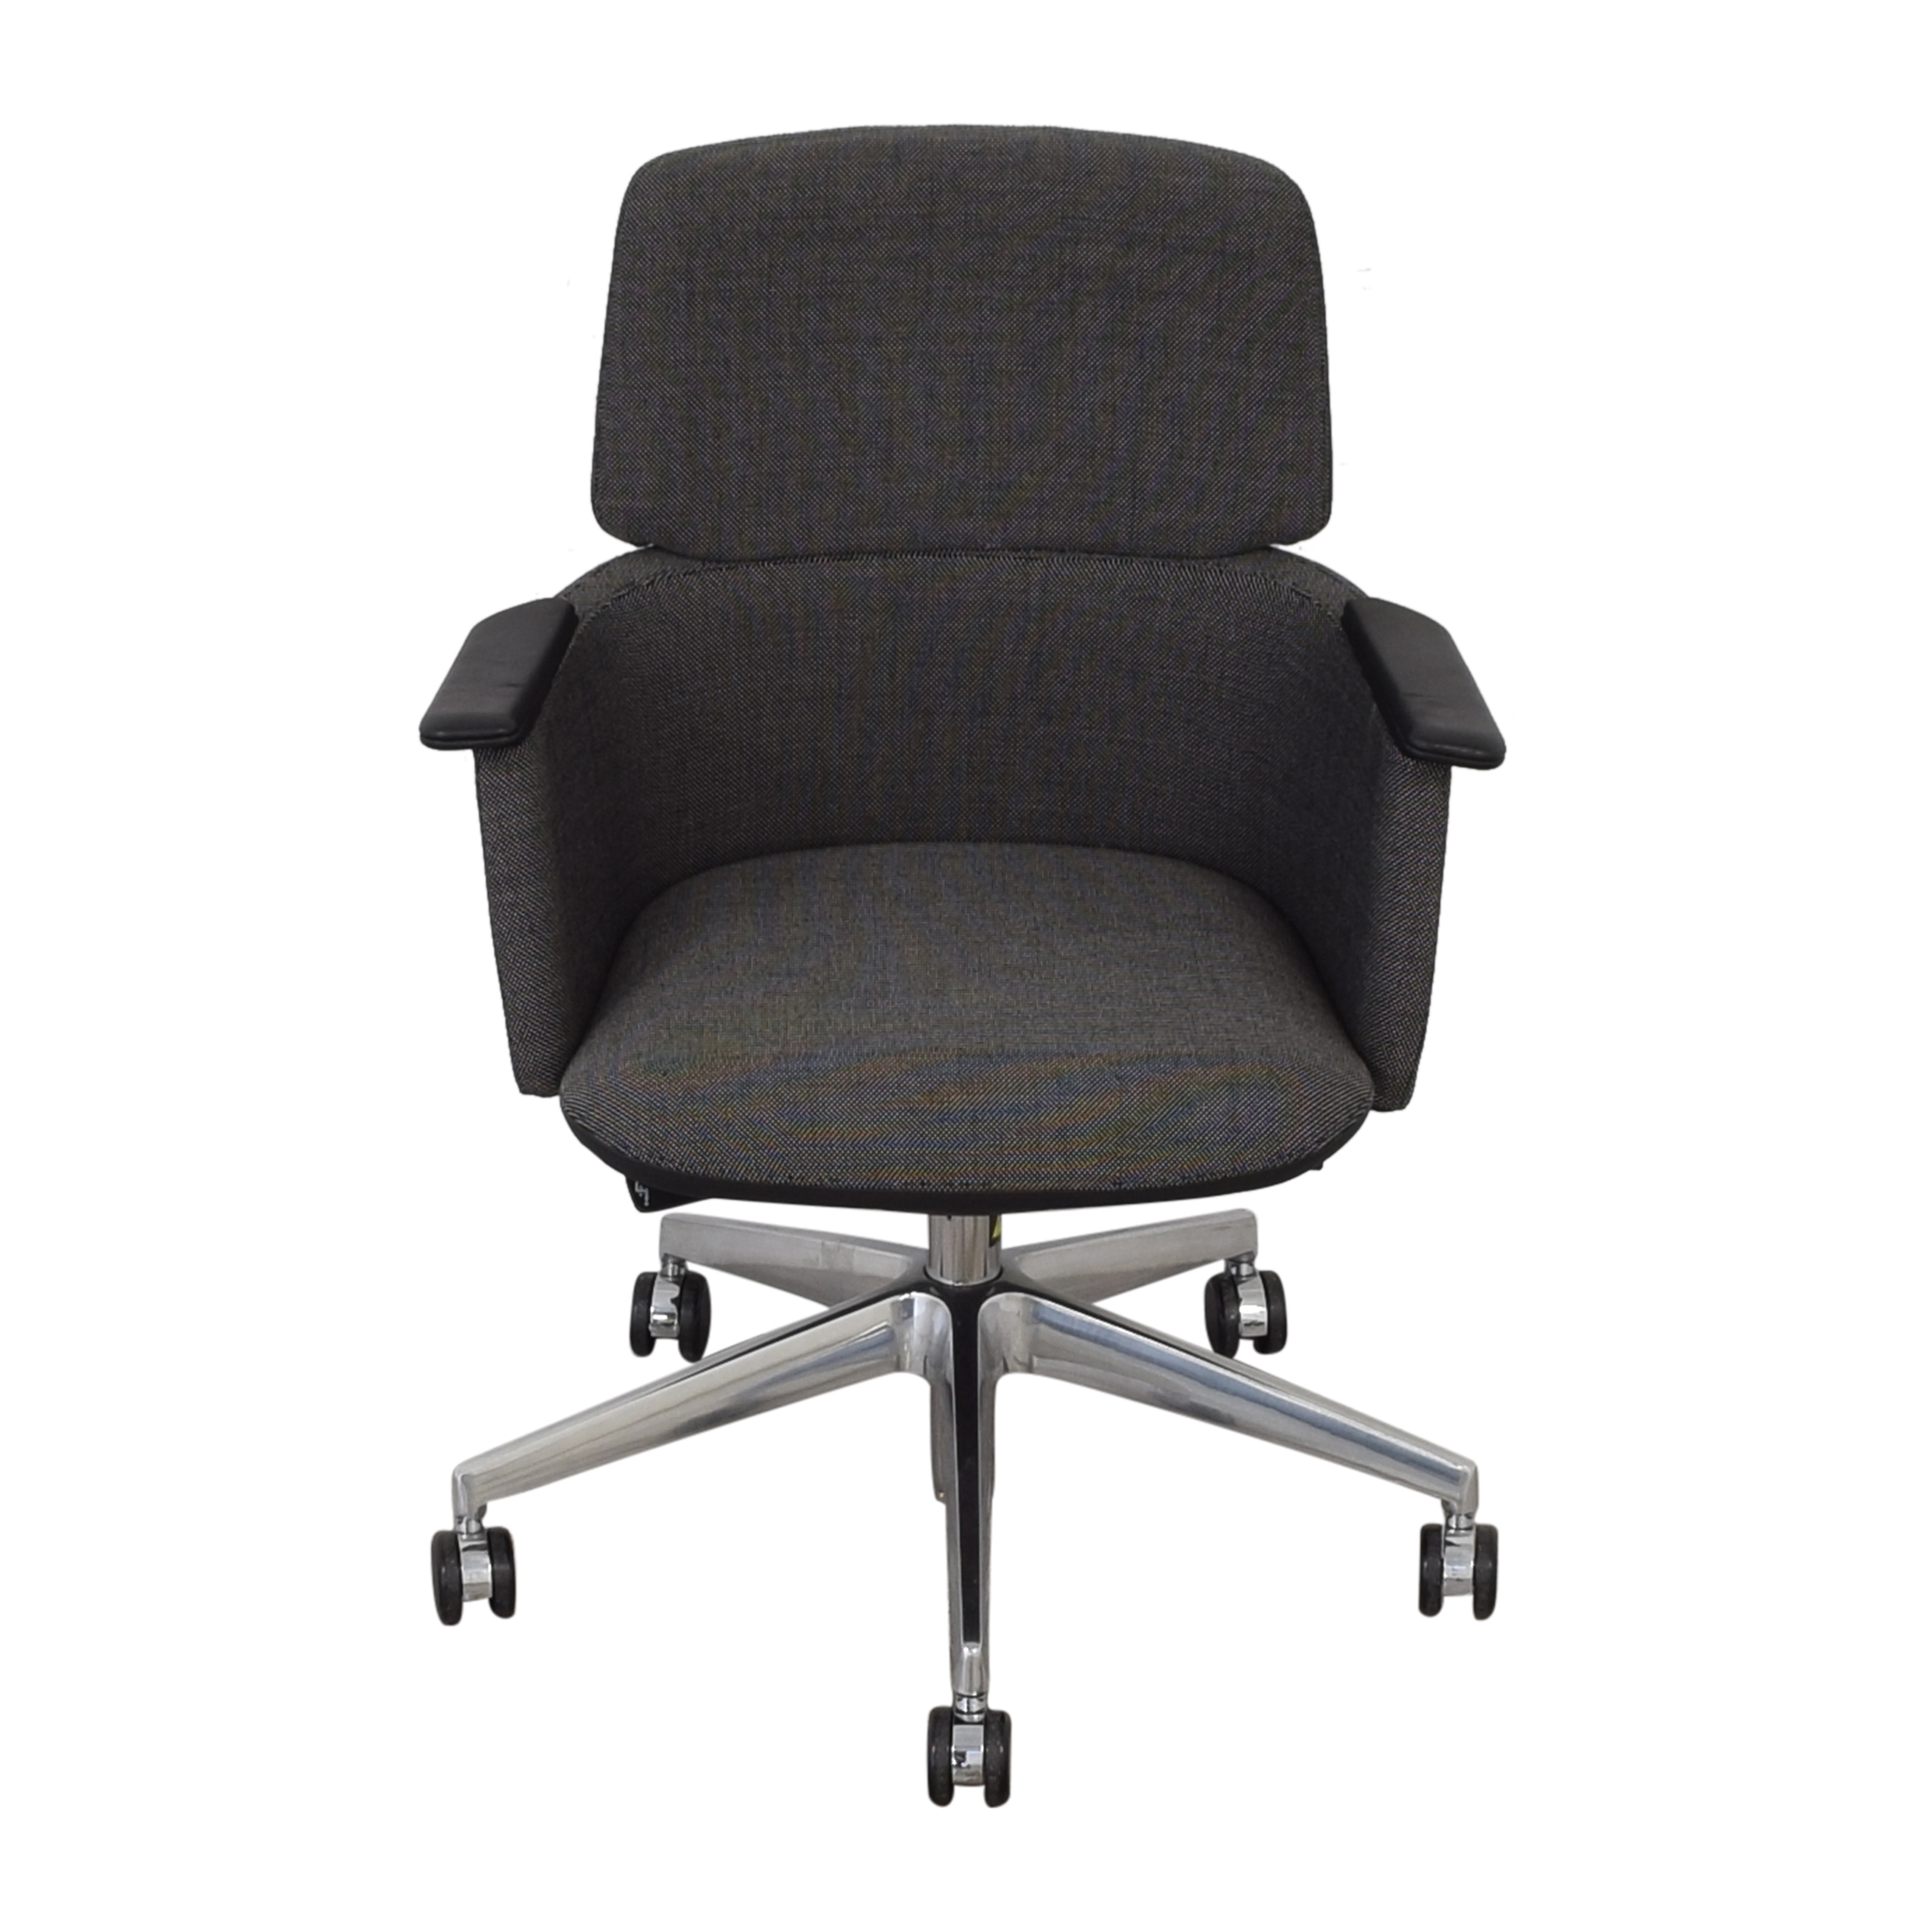 Koleksiyon Koleksiyon Tola Task Chair gray and black